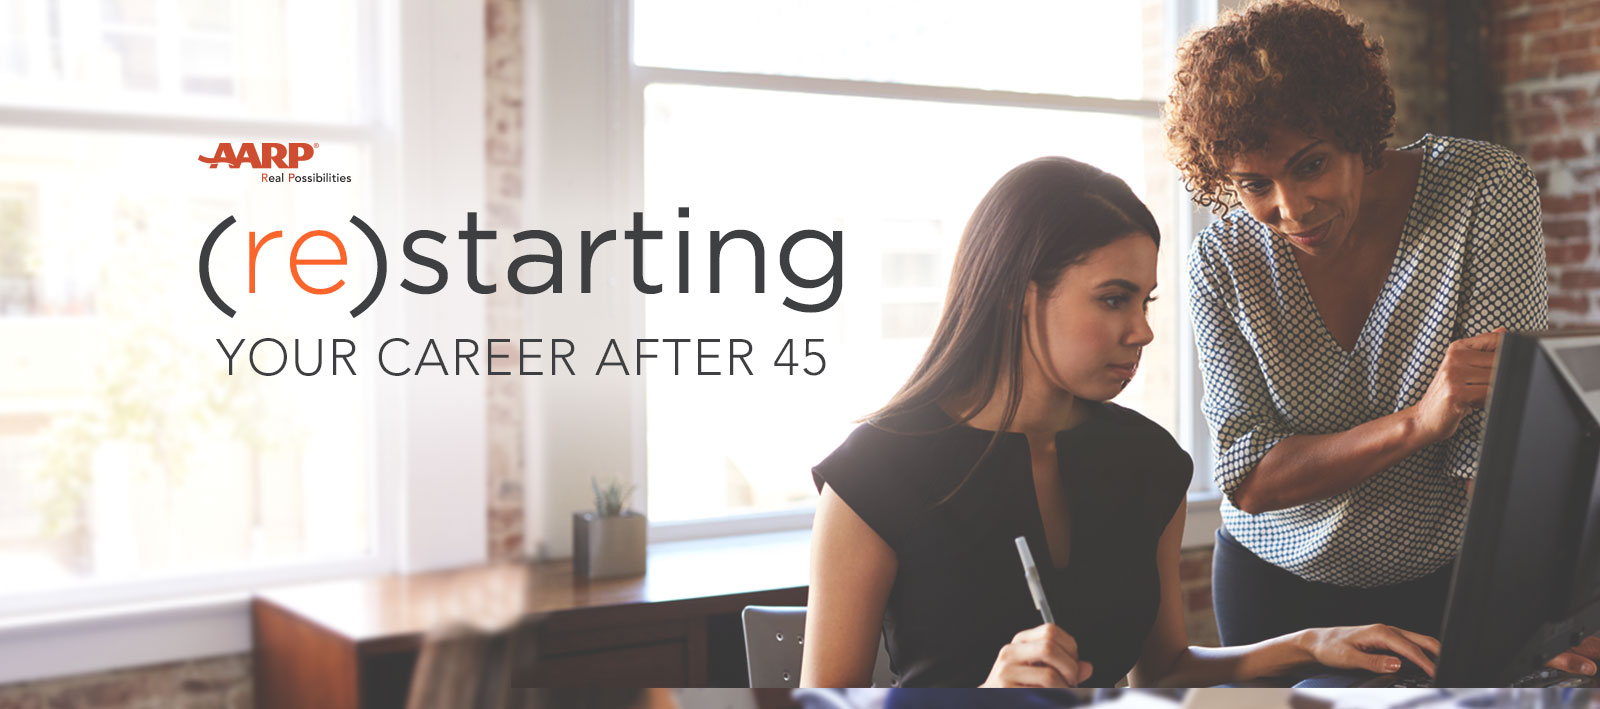 AARP's (re)starting Your Career After 45 Sweepstakes